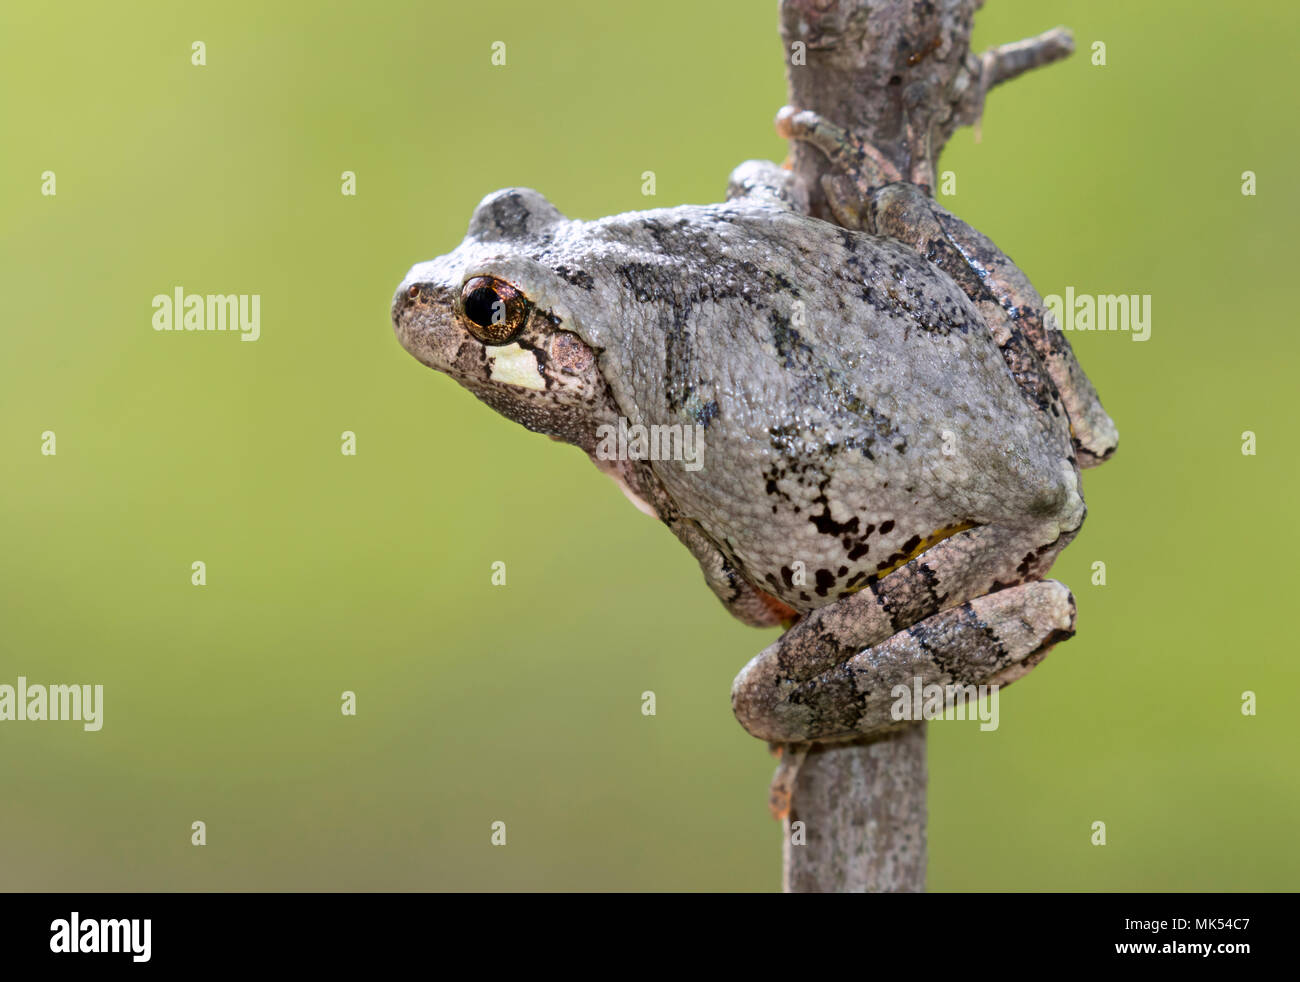 Gray treefrog (Hyla versicolor) on a tree branch, Iowa, USA. Stock Photo